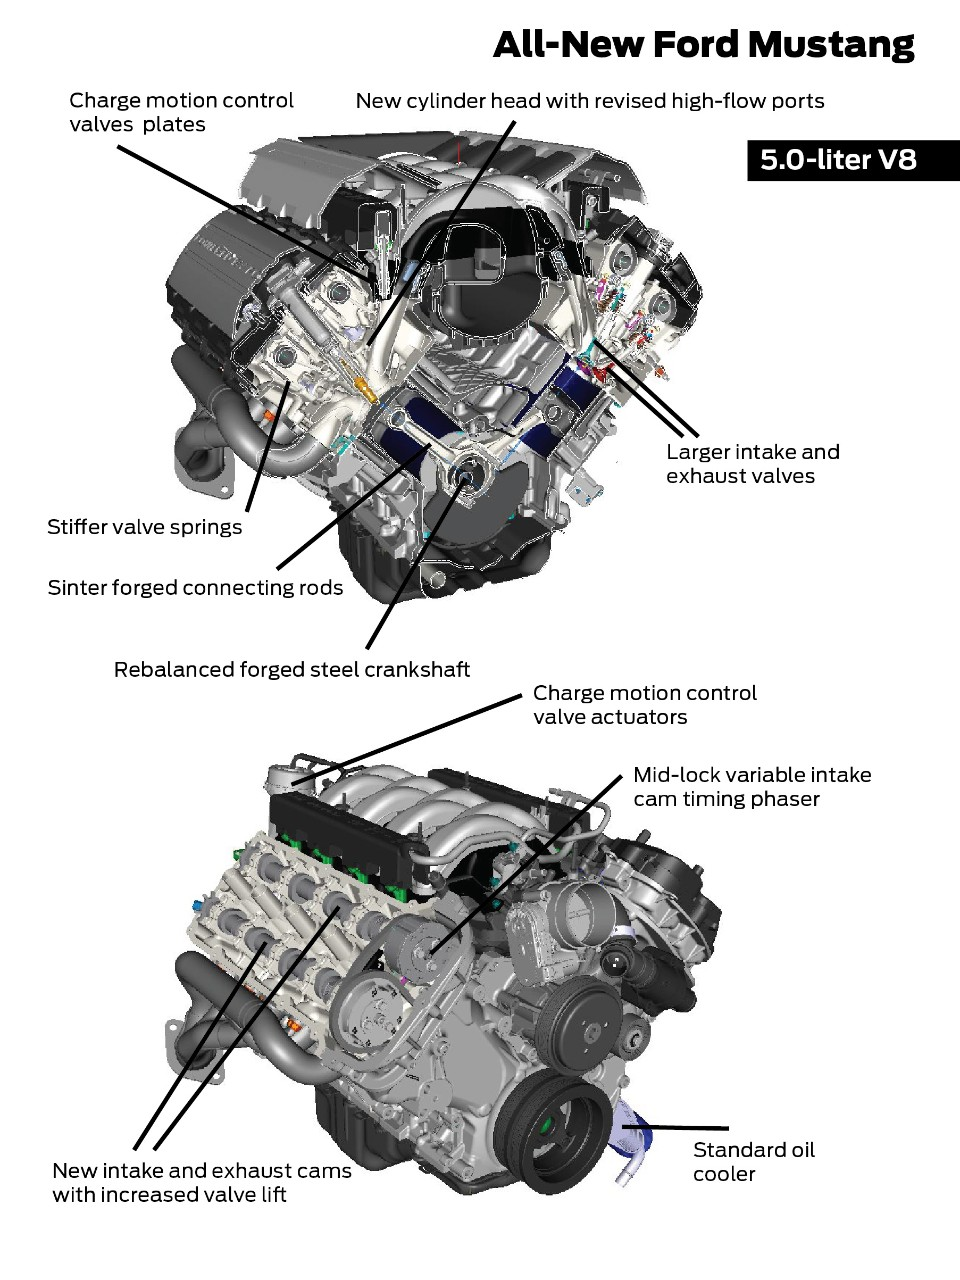 2017 Mustang Engine Specs 5 0l V8 Coyote 0